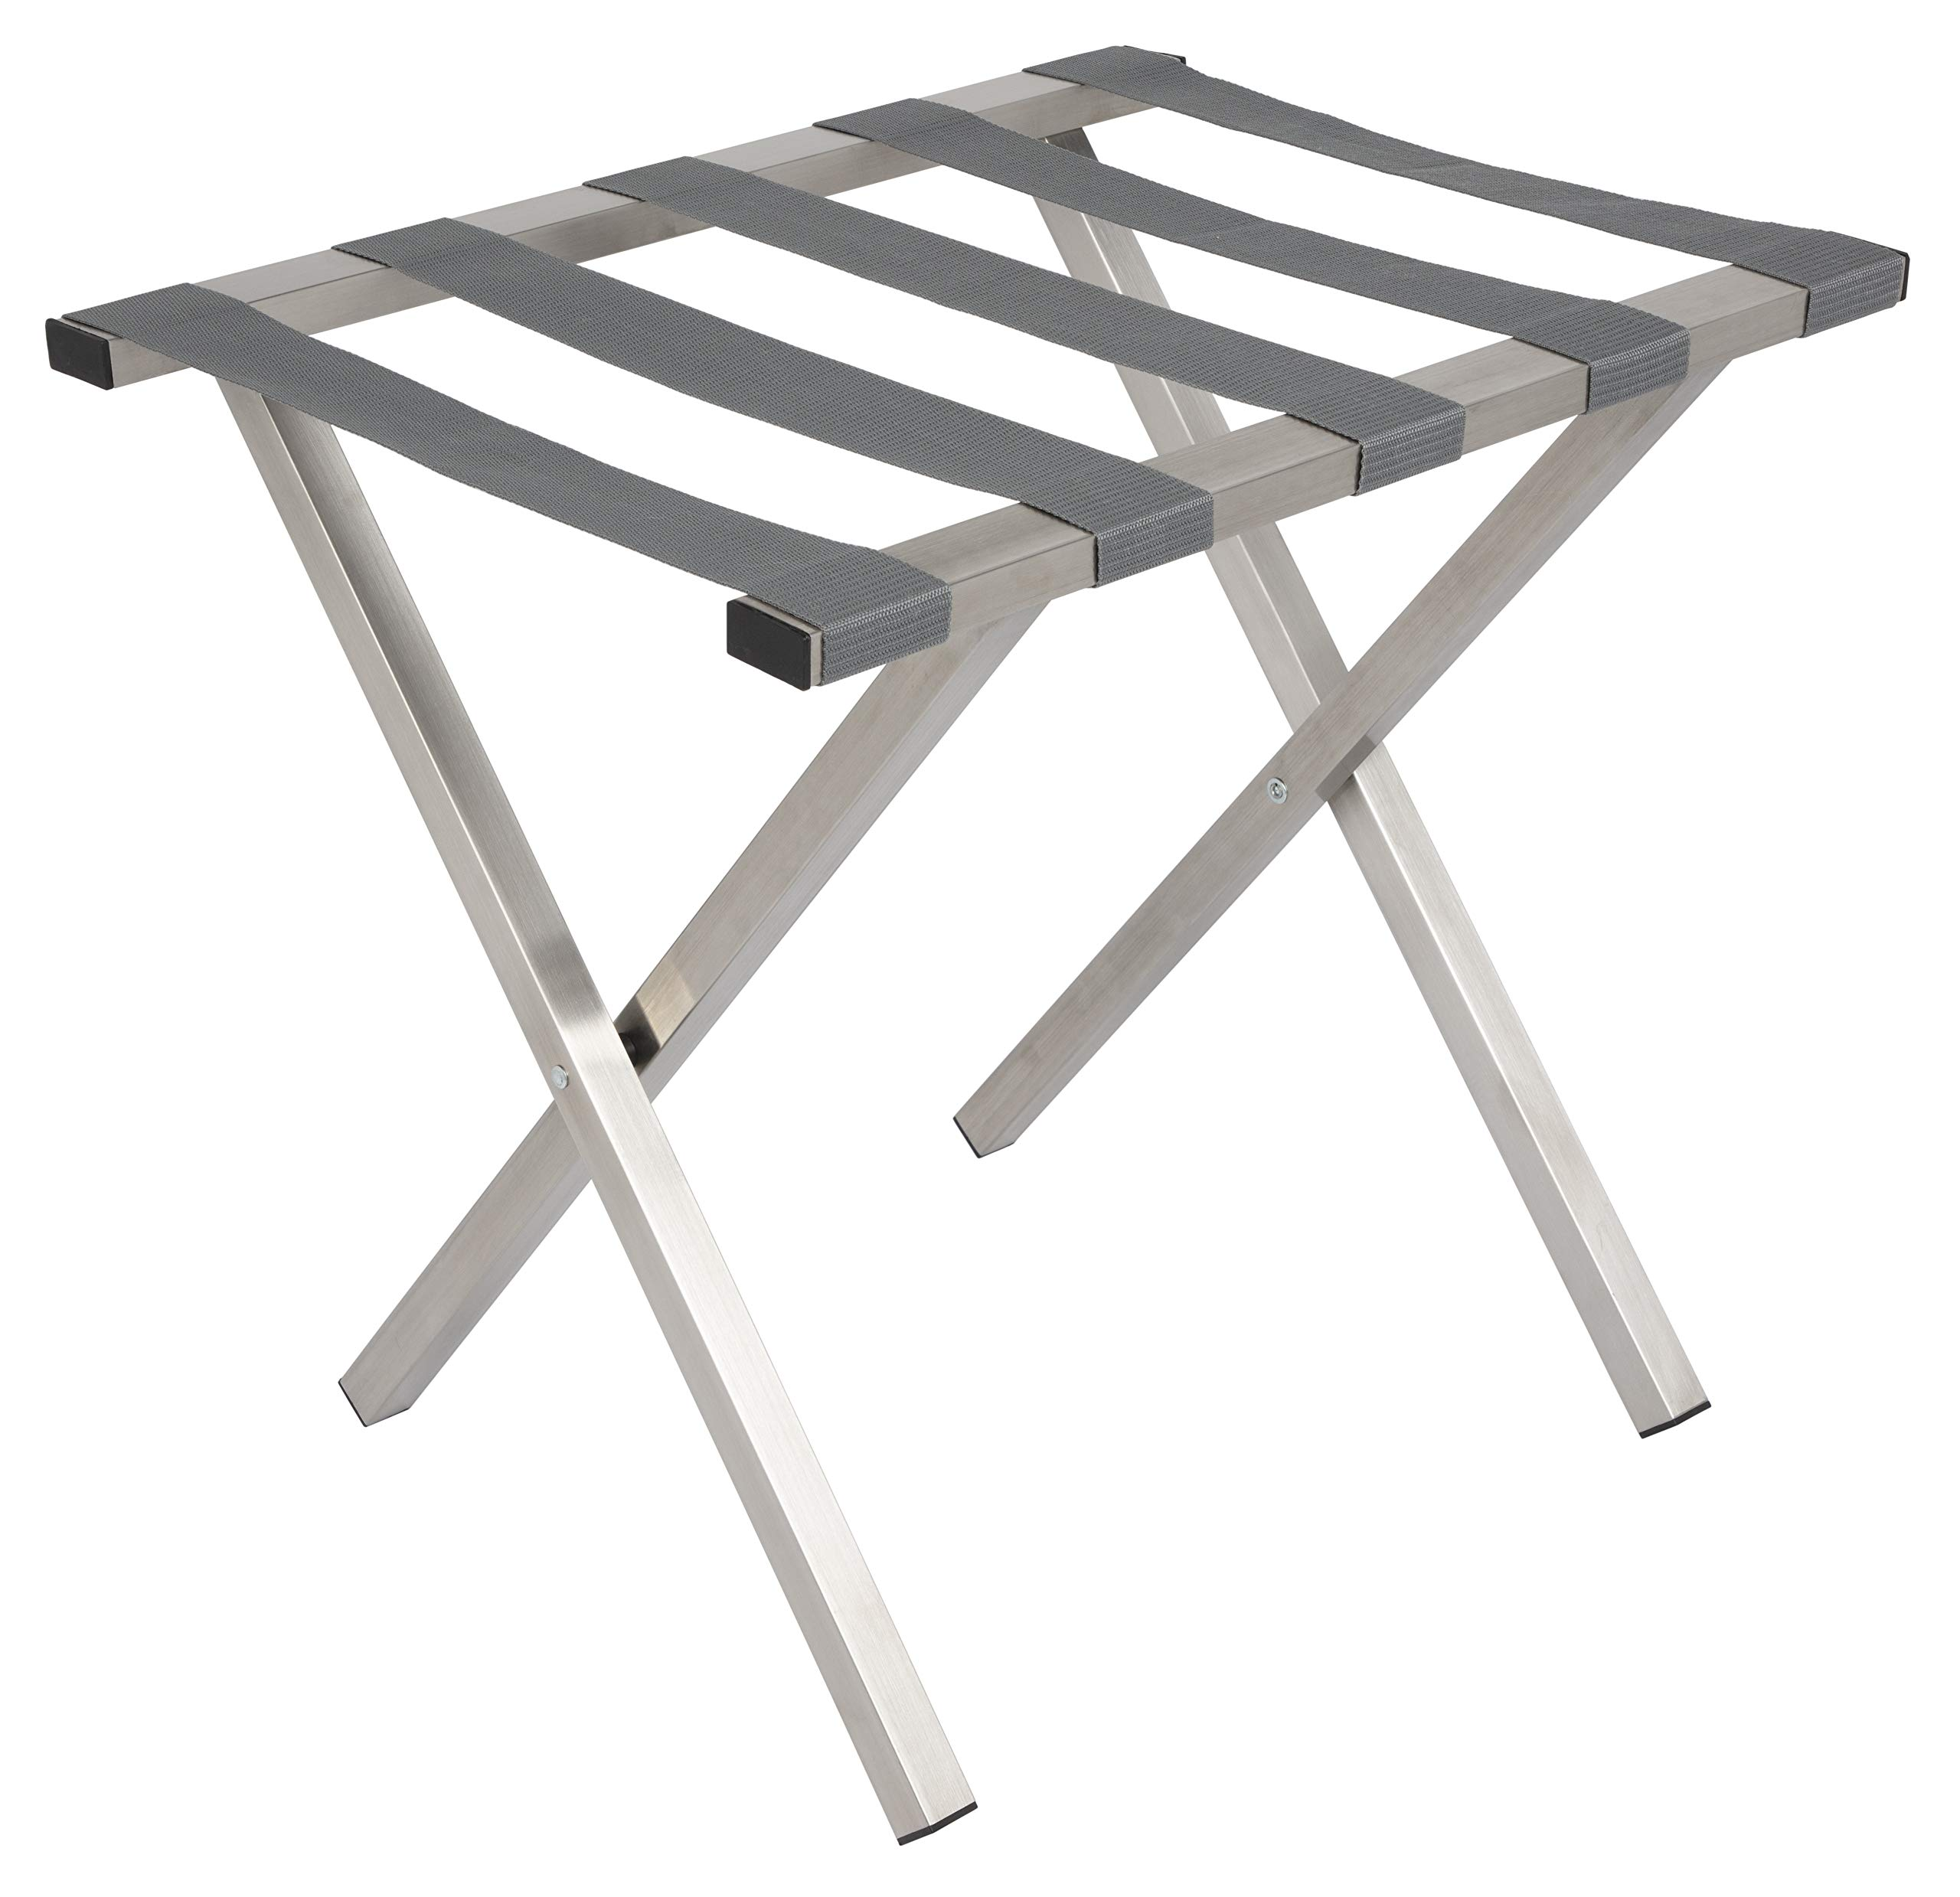 Wholesale Hotel Products MLR_SQ_BS_GR Brushed Stainless Steel Luggage Rack, Straps, Square Tubing, Gray